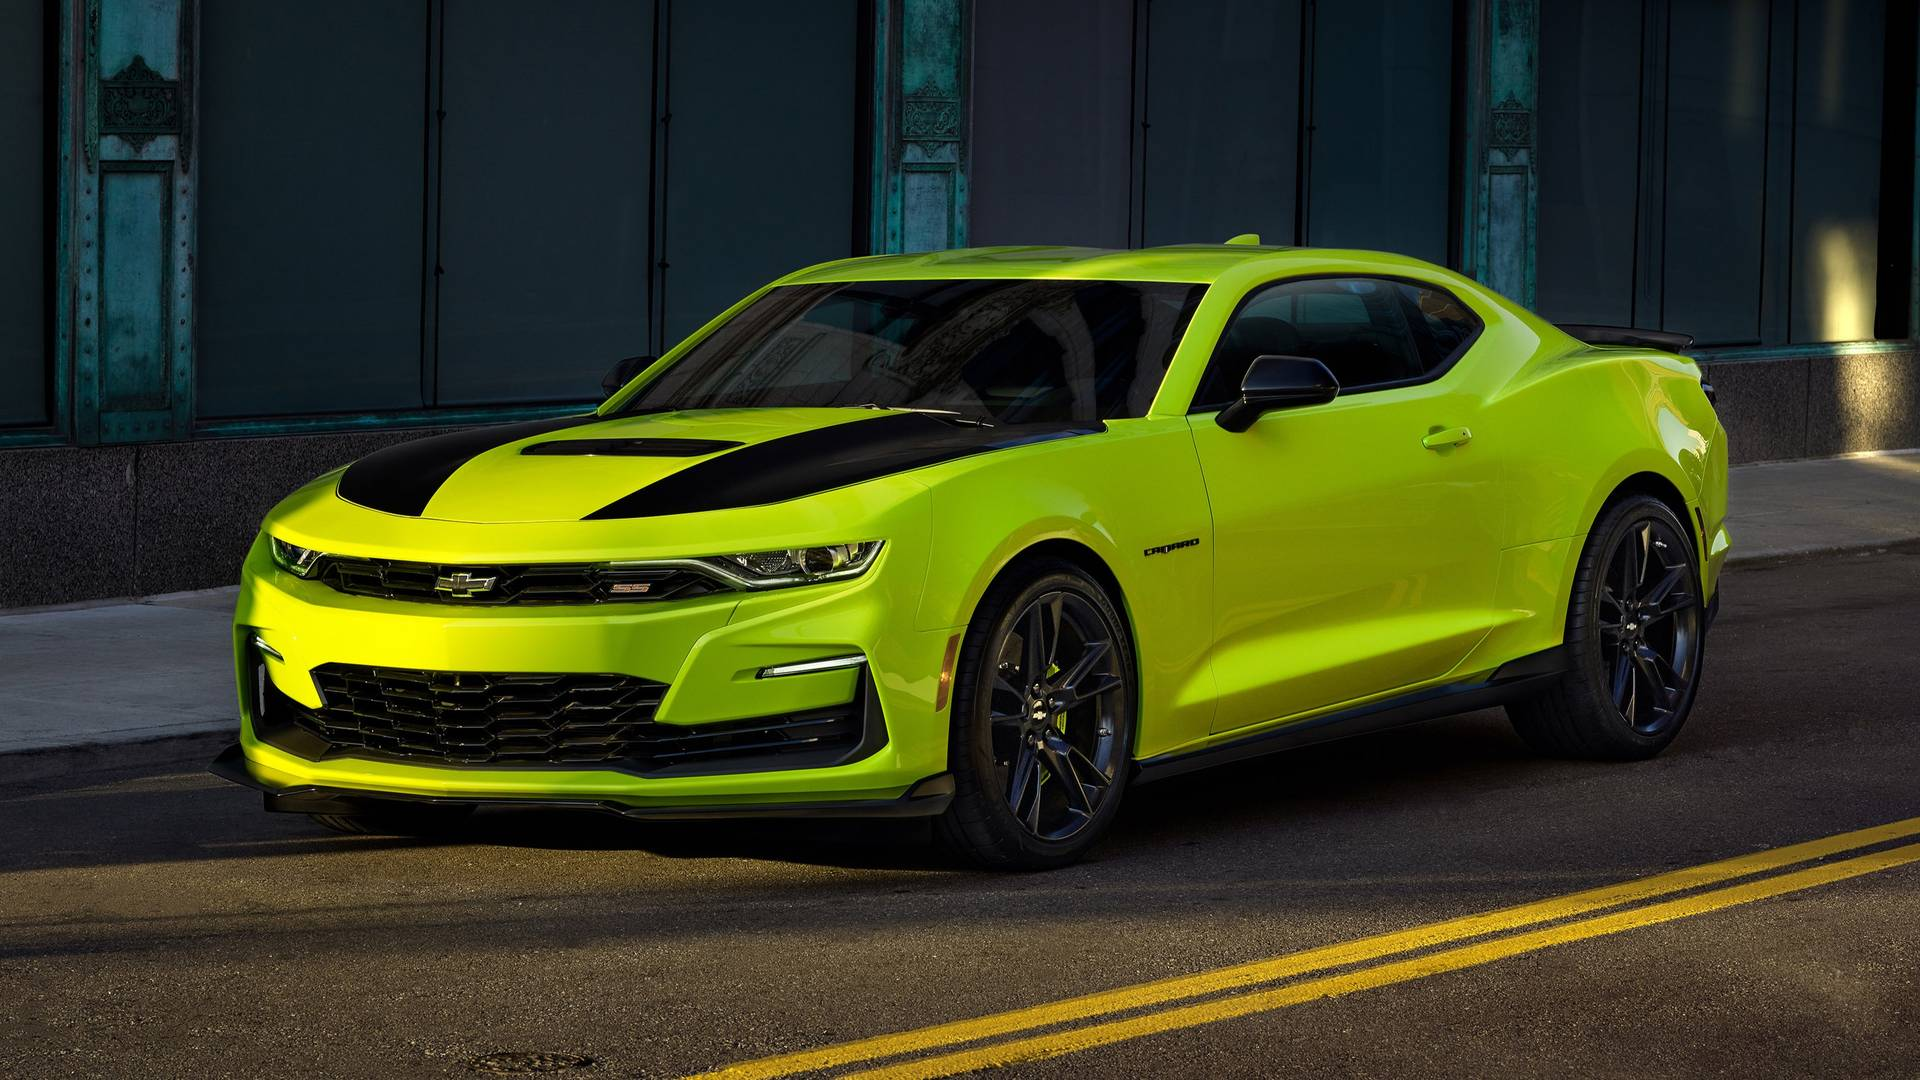 2019 Chevrolet Camaro Financing near Schererville, IN